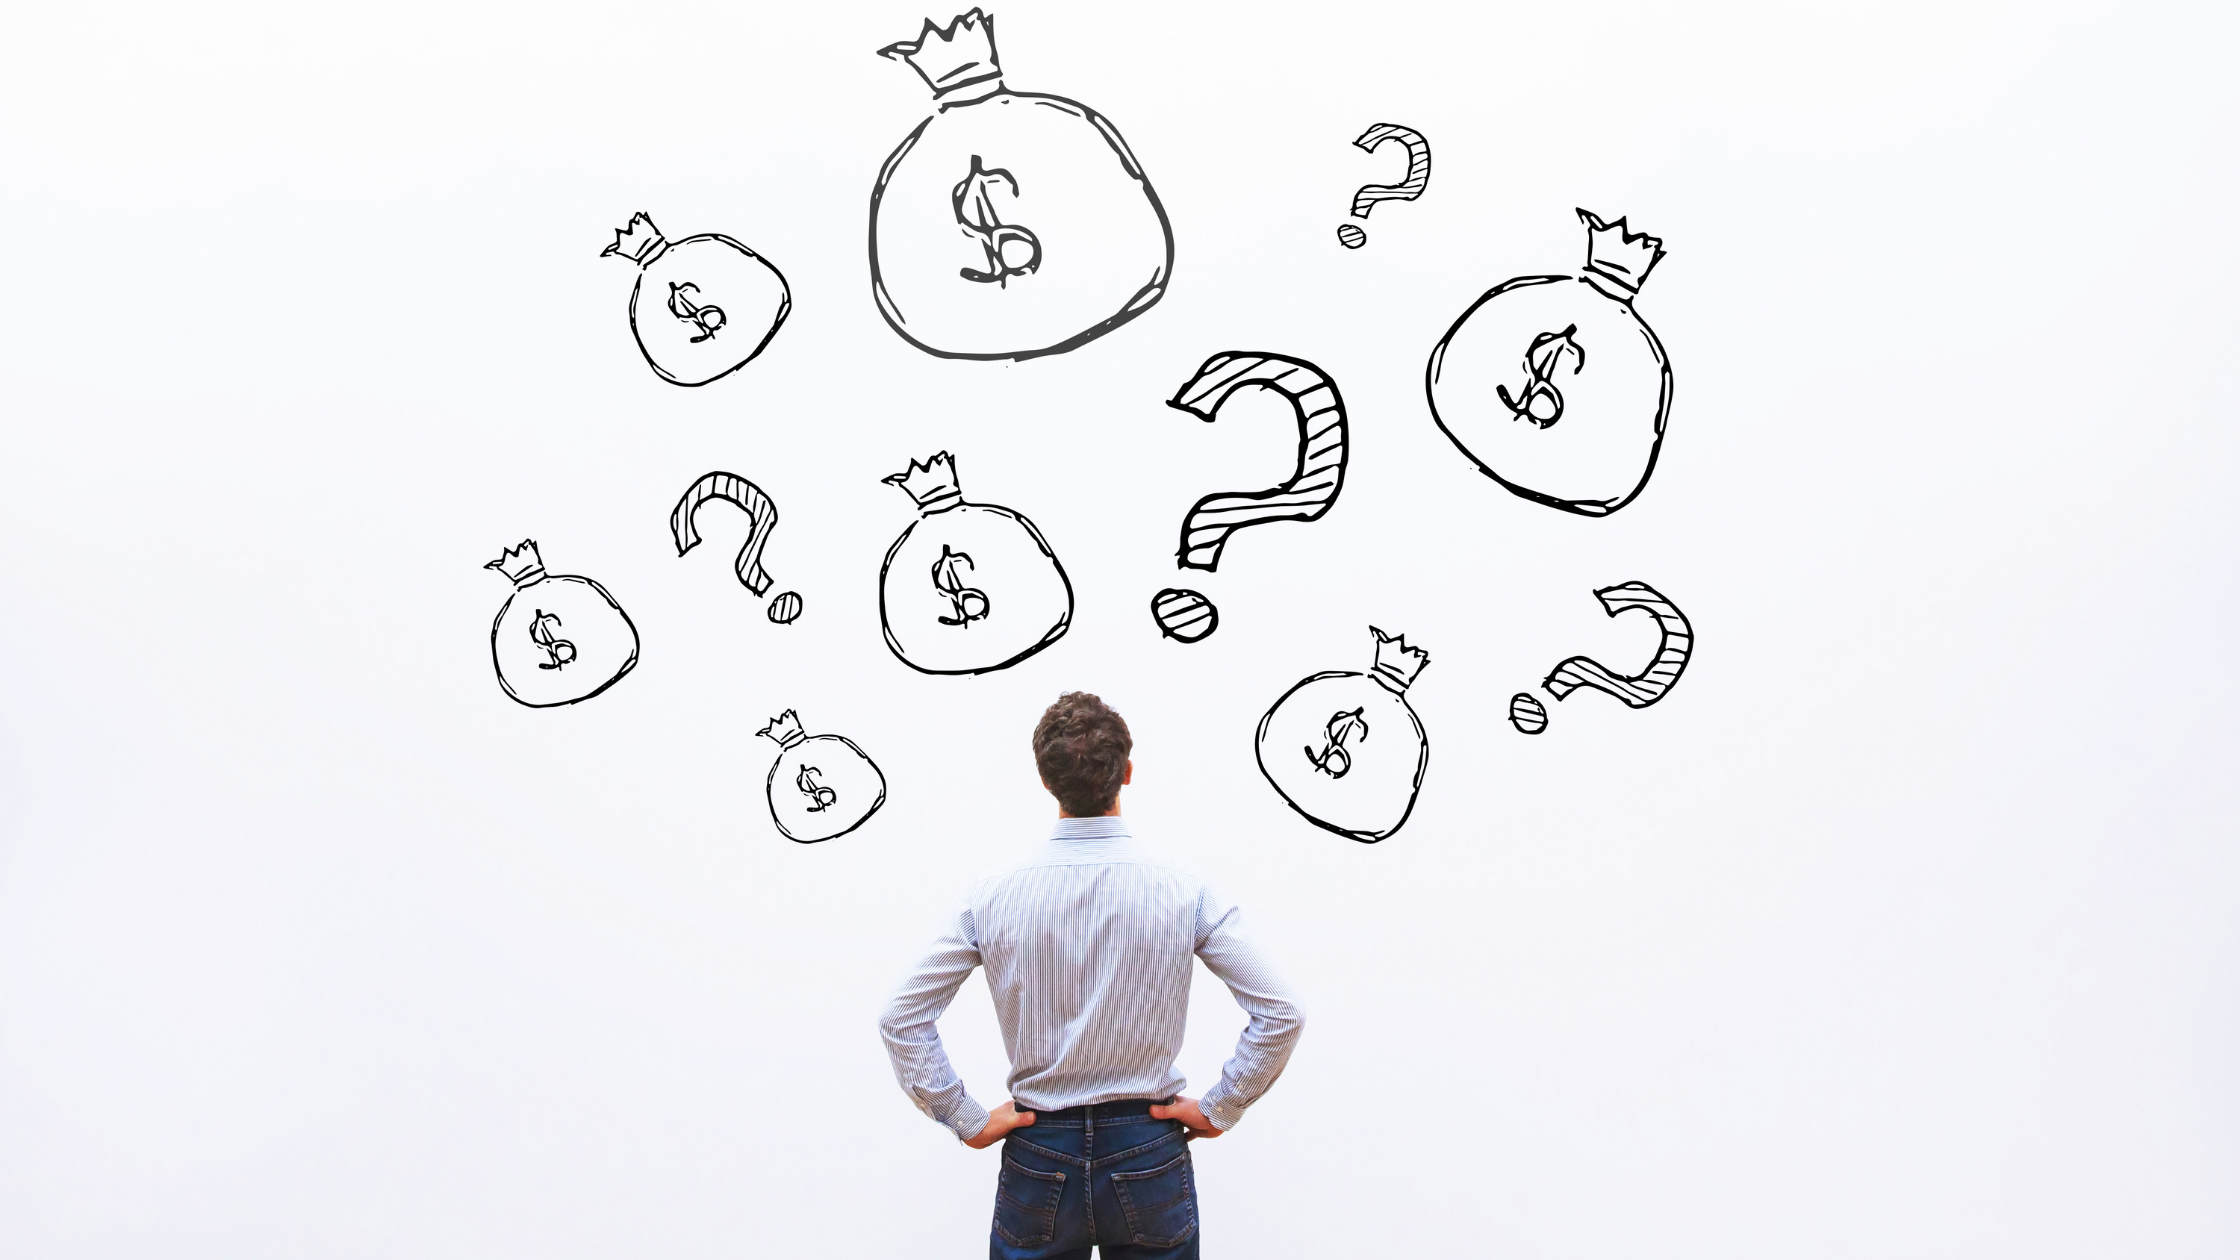 Man facing away from camera with hands on his hips on a white background. Illustrations of question marks and bags of money float above his head.